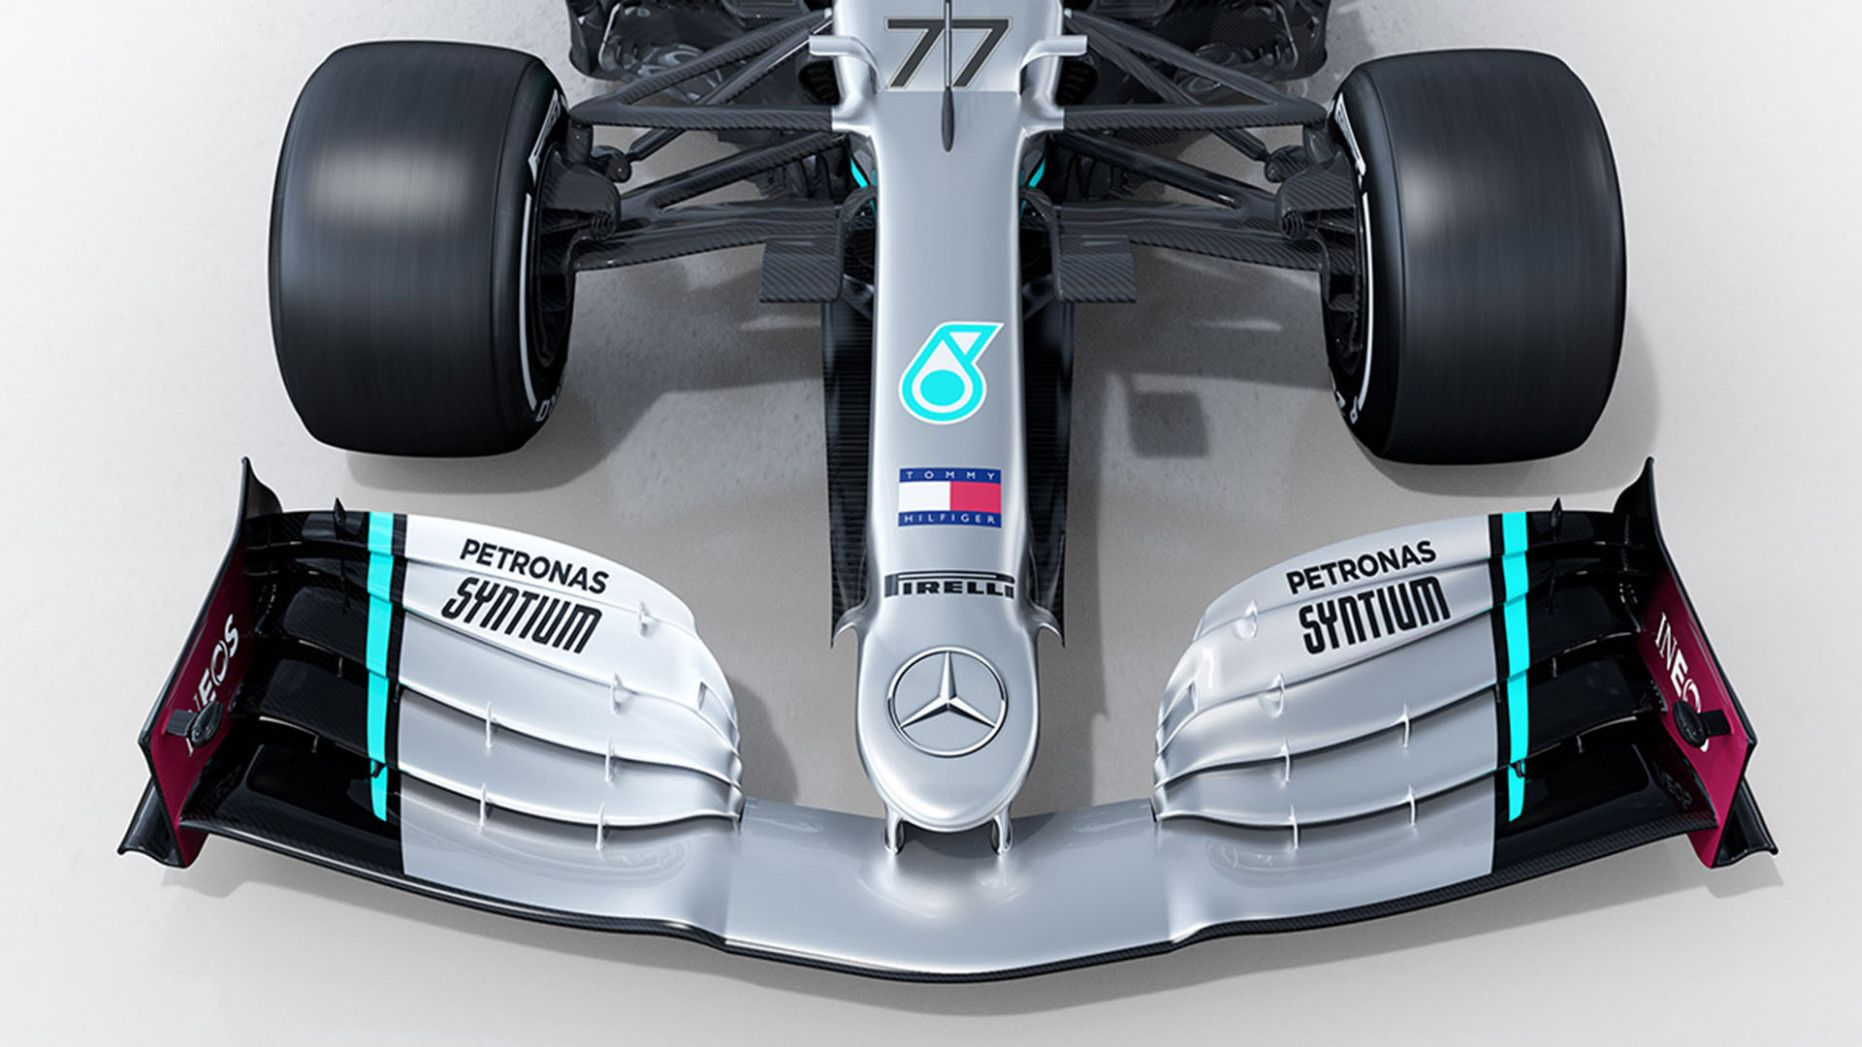 11 Wallpaper 2020 Mercedes Formula 1 Car In 2020 Mercedes Amg Formula 1 Car Mercedes